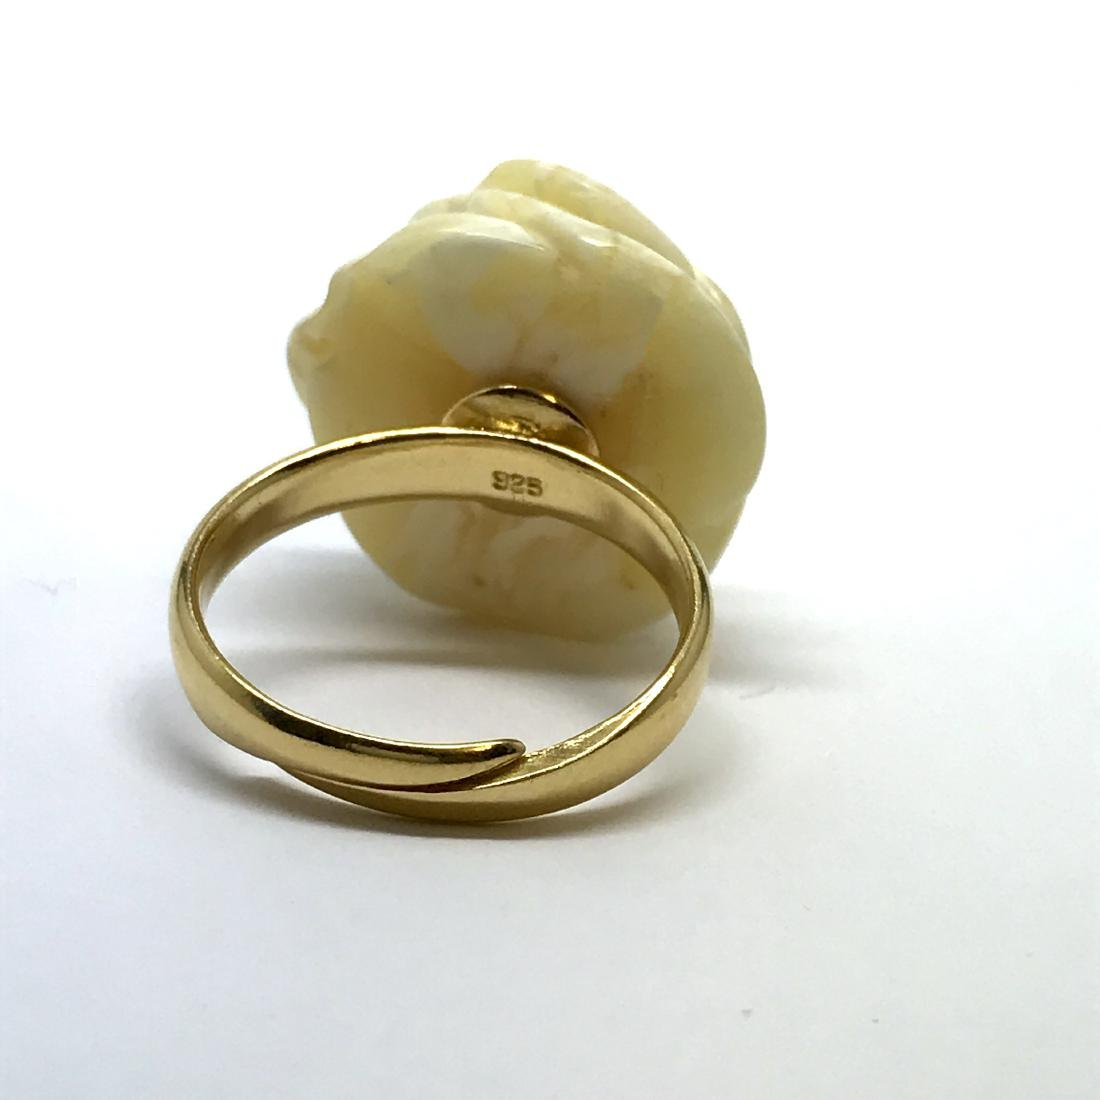 Vintage silver ring white Baltic amber hand carved rose - 8